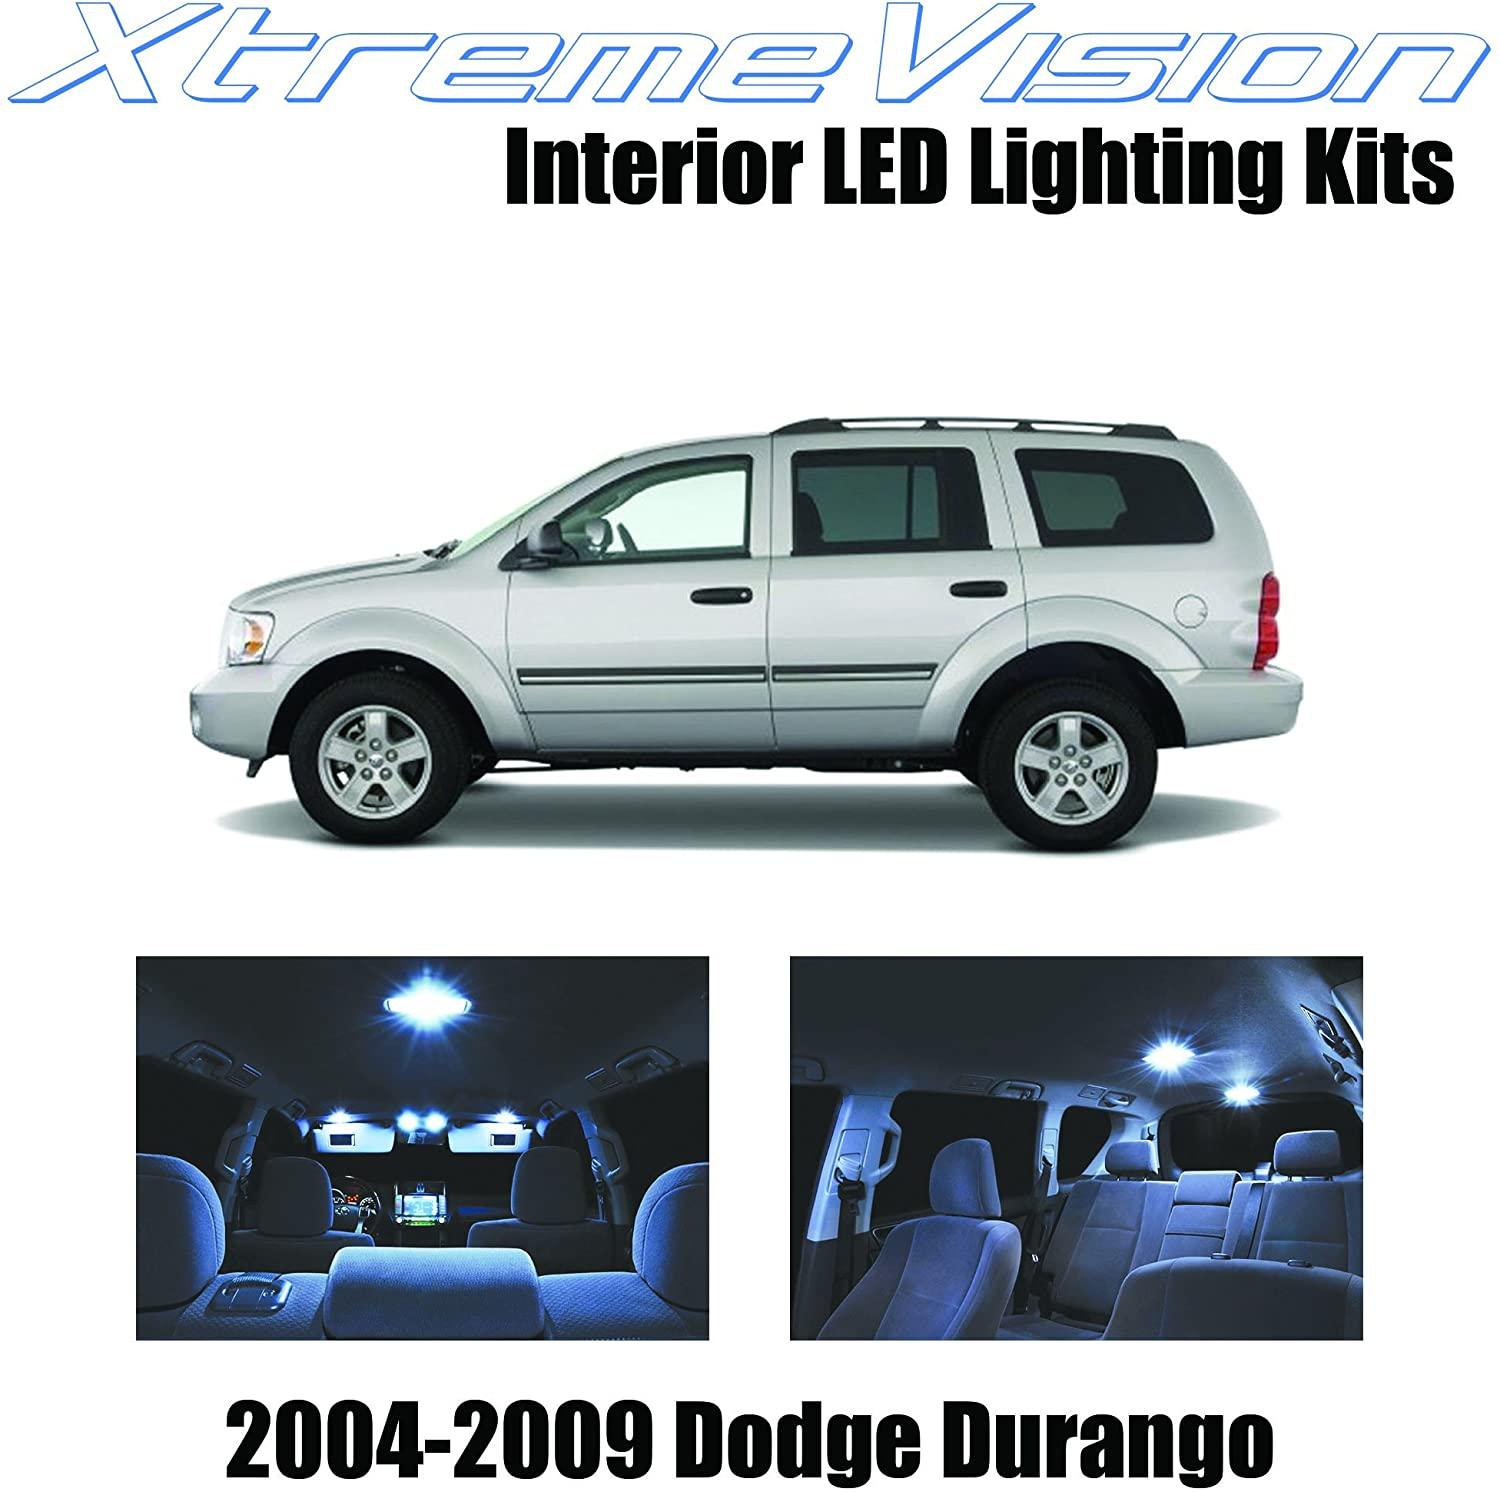 Xtremevision Interior LED for Dodge Durango 2004-2009 (7 Pieces) Cool White Interior LED Kit + Installation Tool